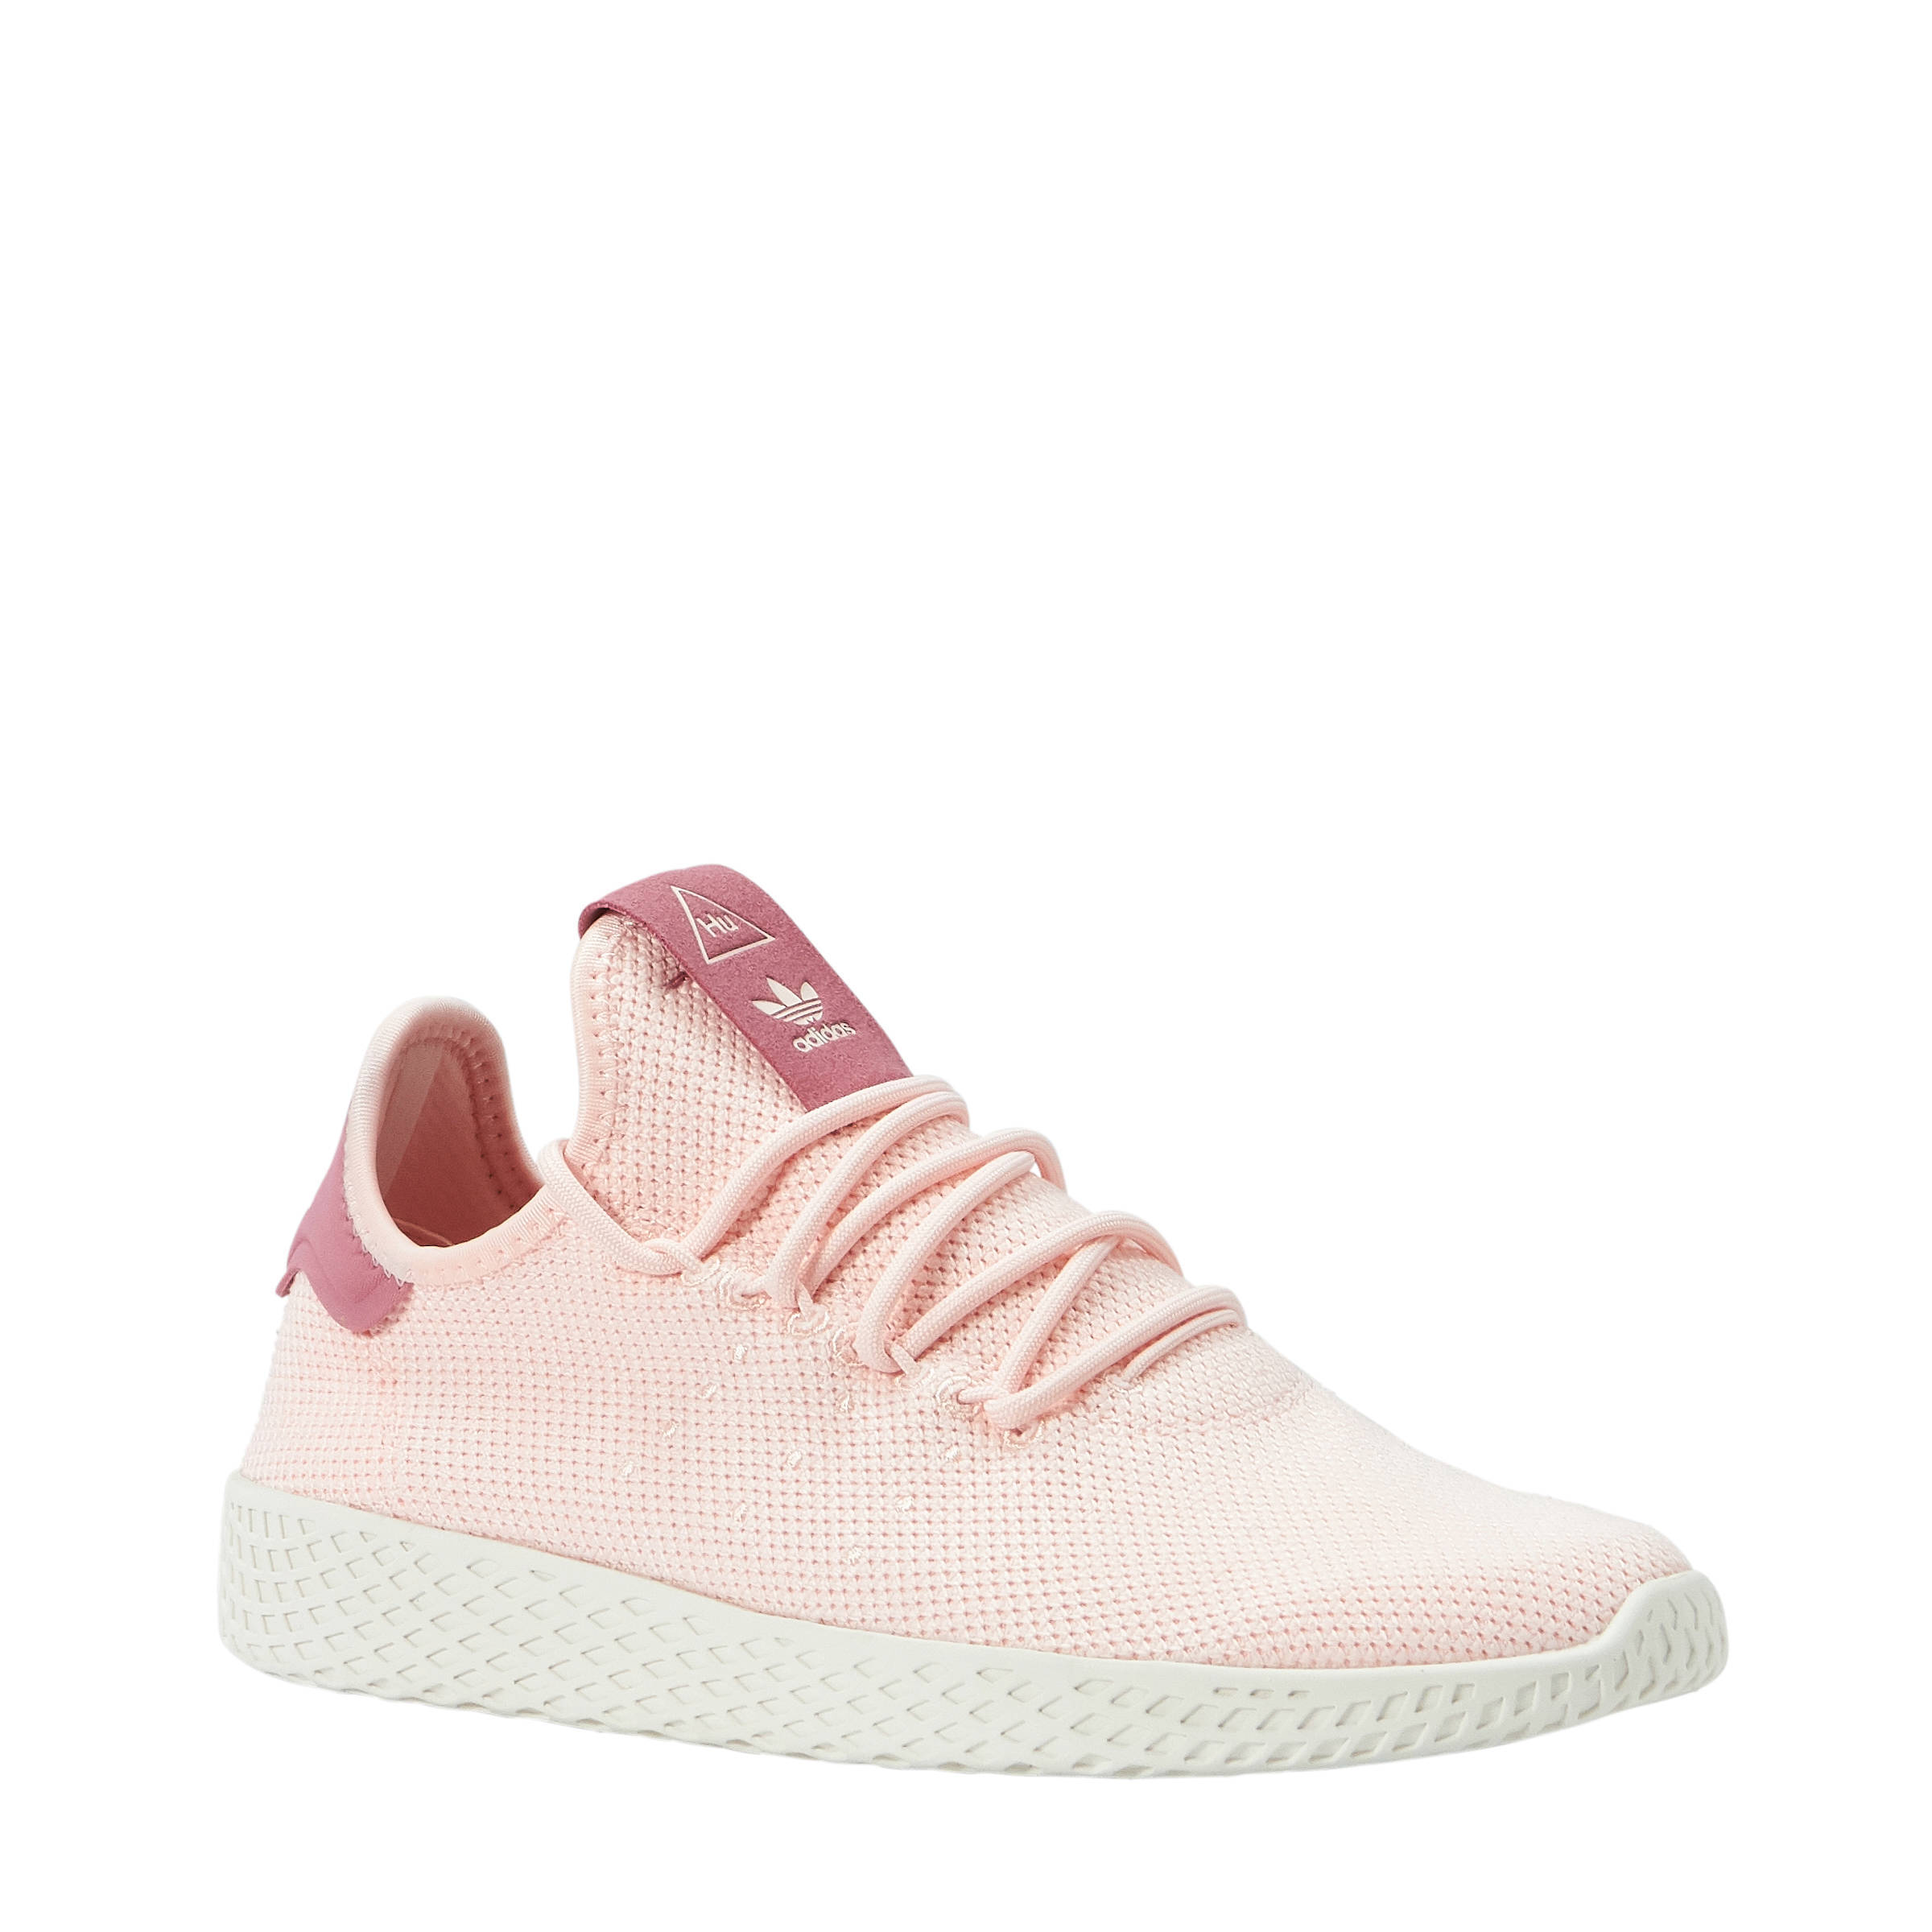 adidas originals PW Tennis HU sneakers lichtroze | wehkamp